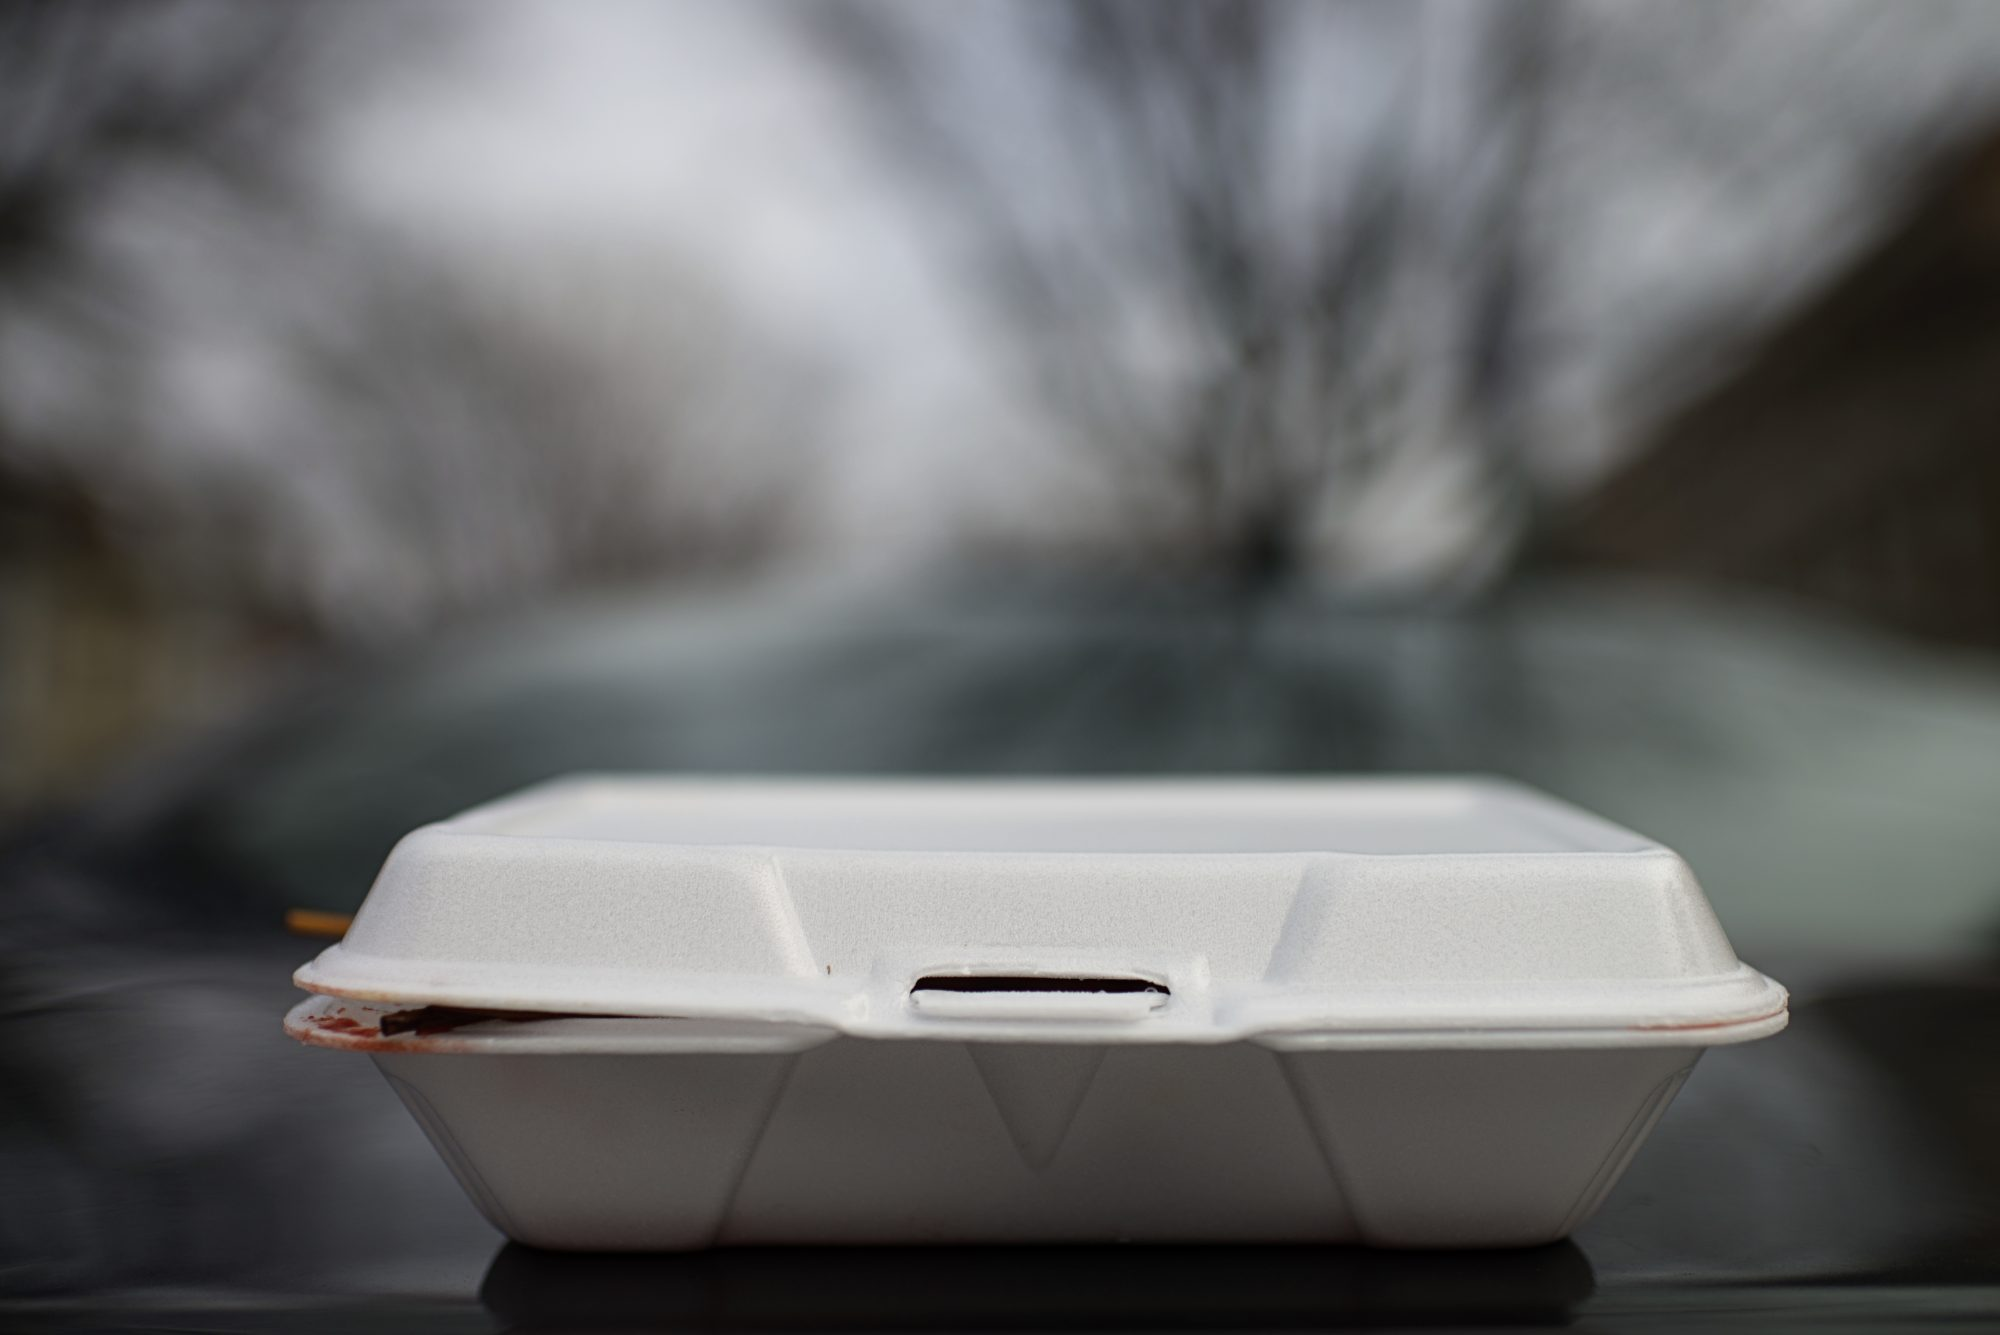 Maryland May Be the First State to Ban Foam Food Containers